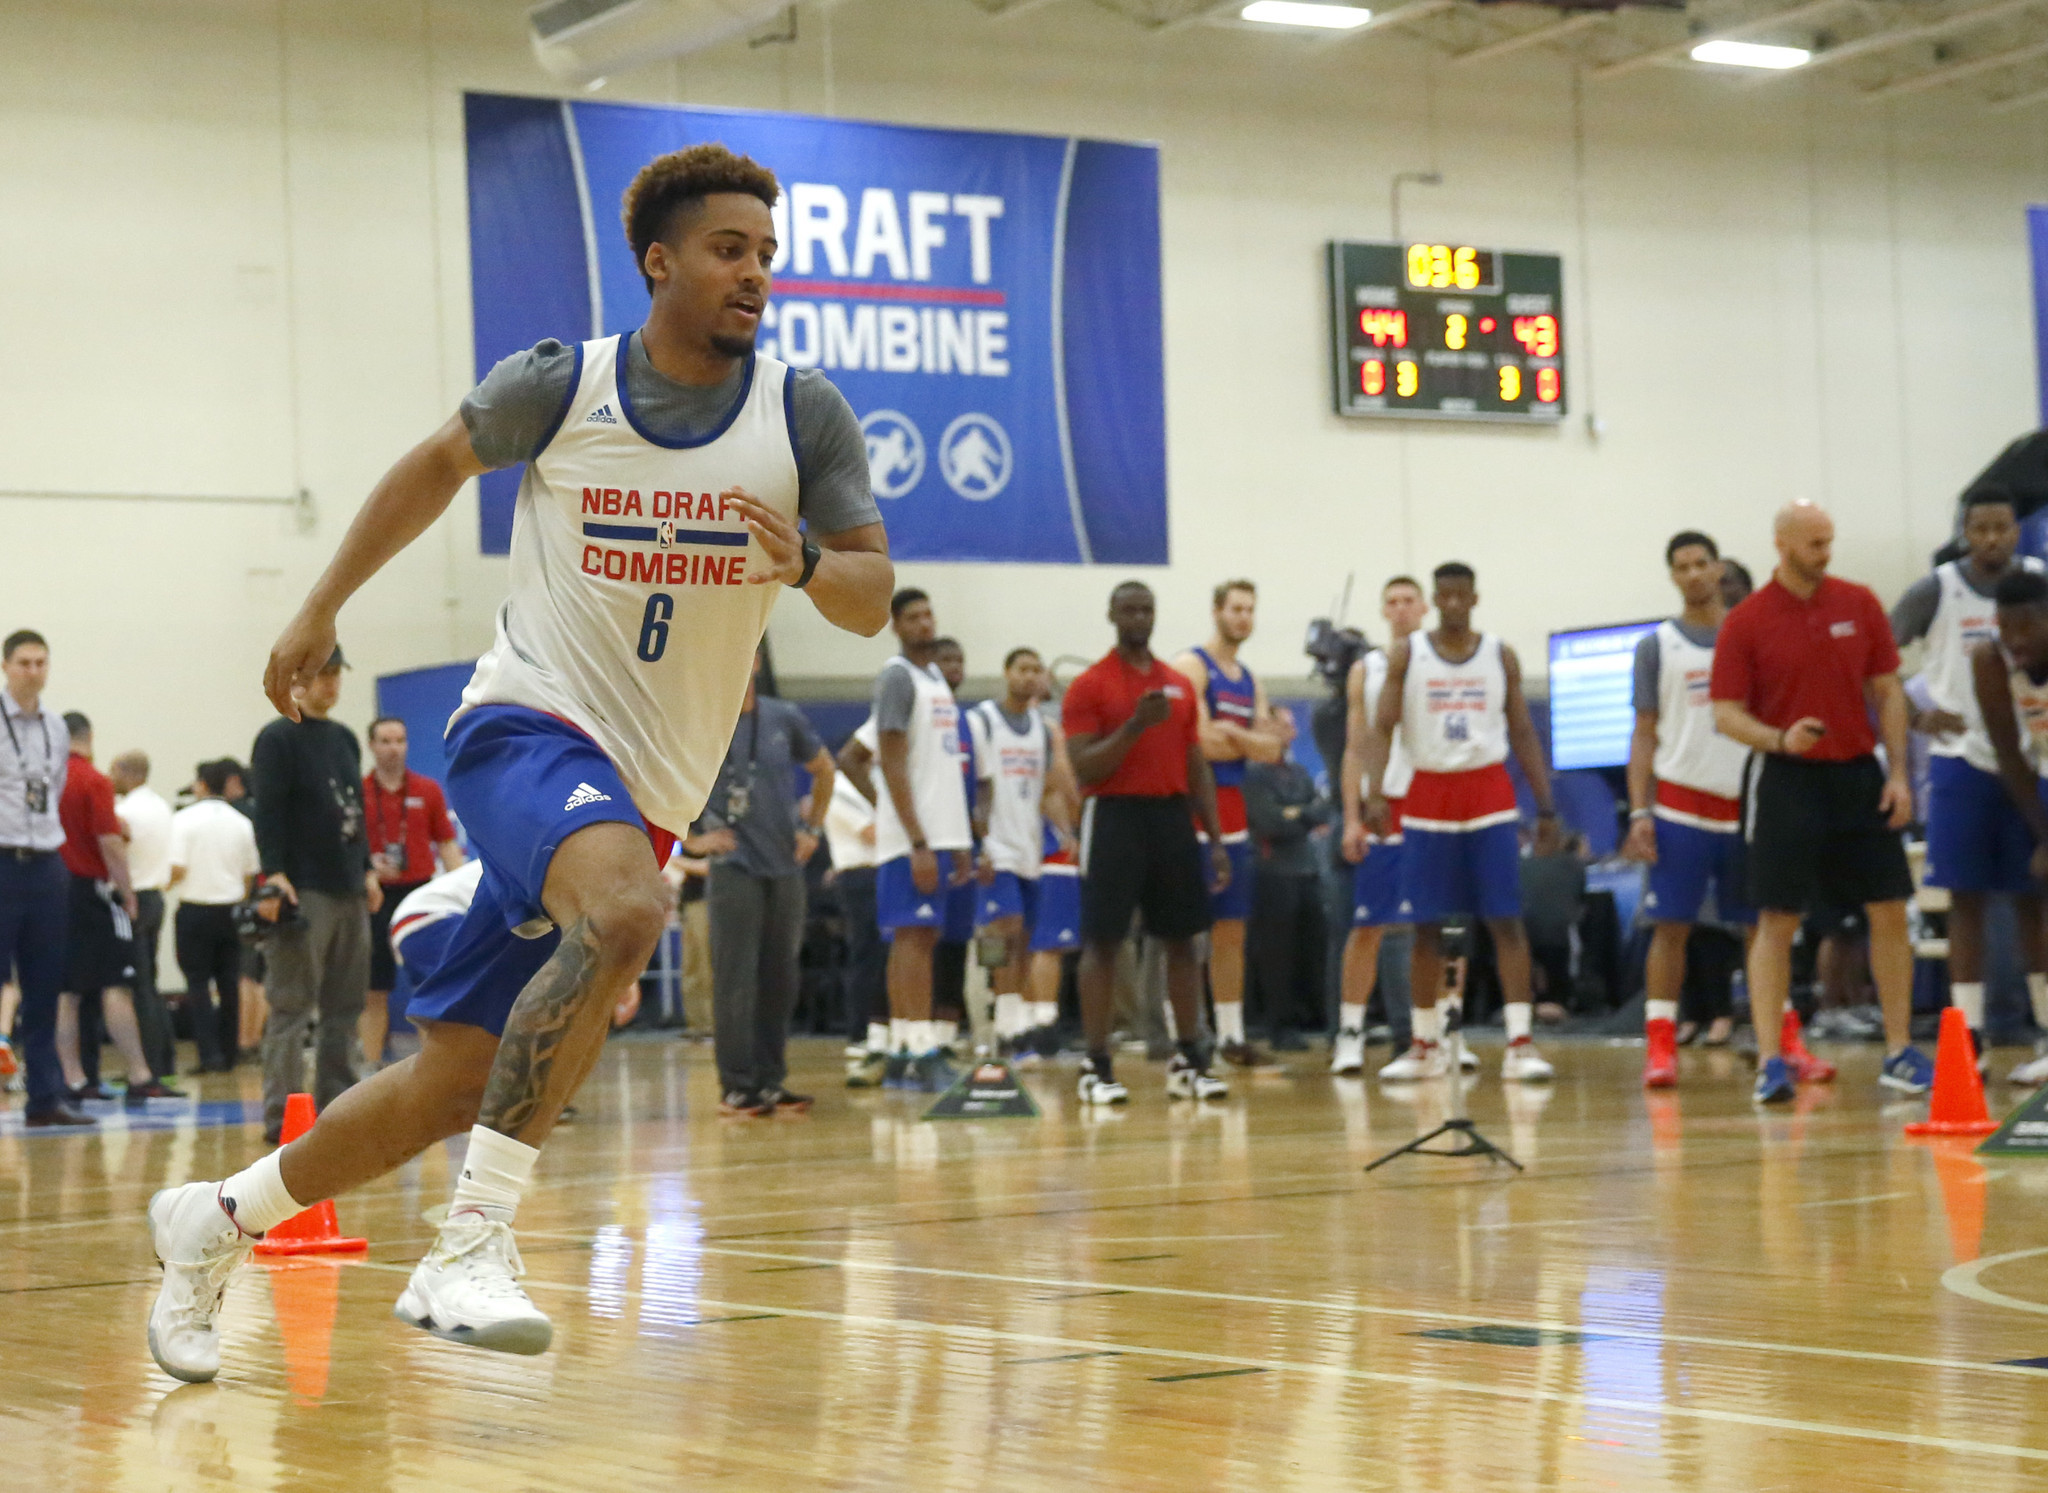 new ncaa rule a benefit to players uncertain about nba